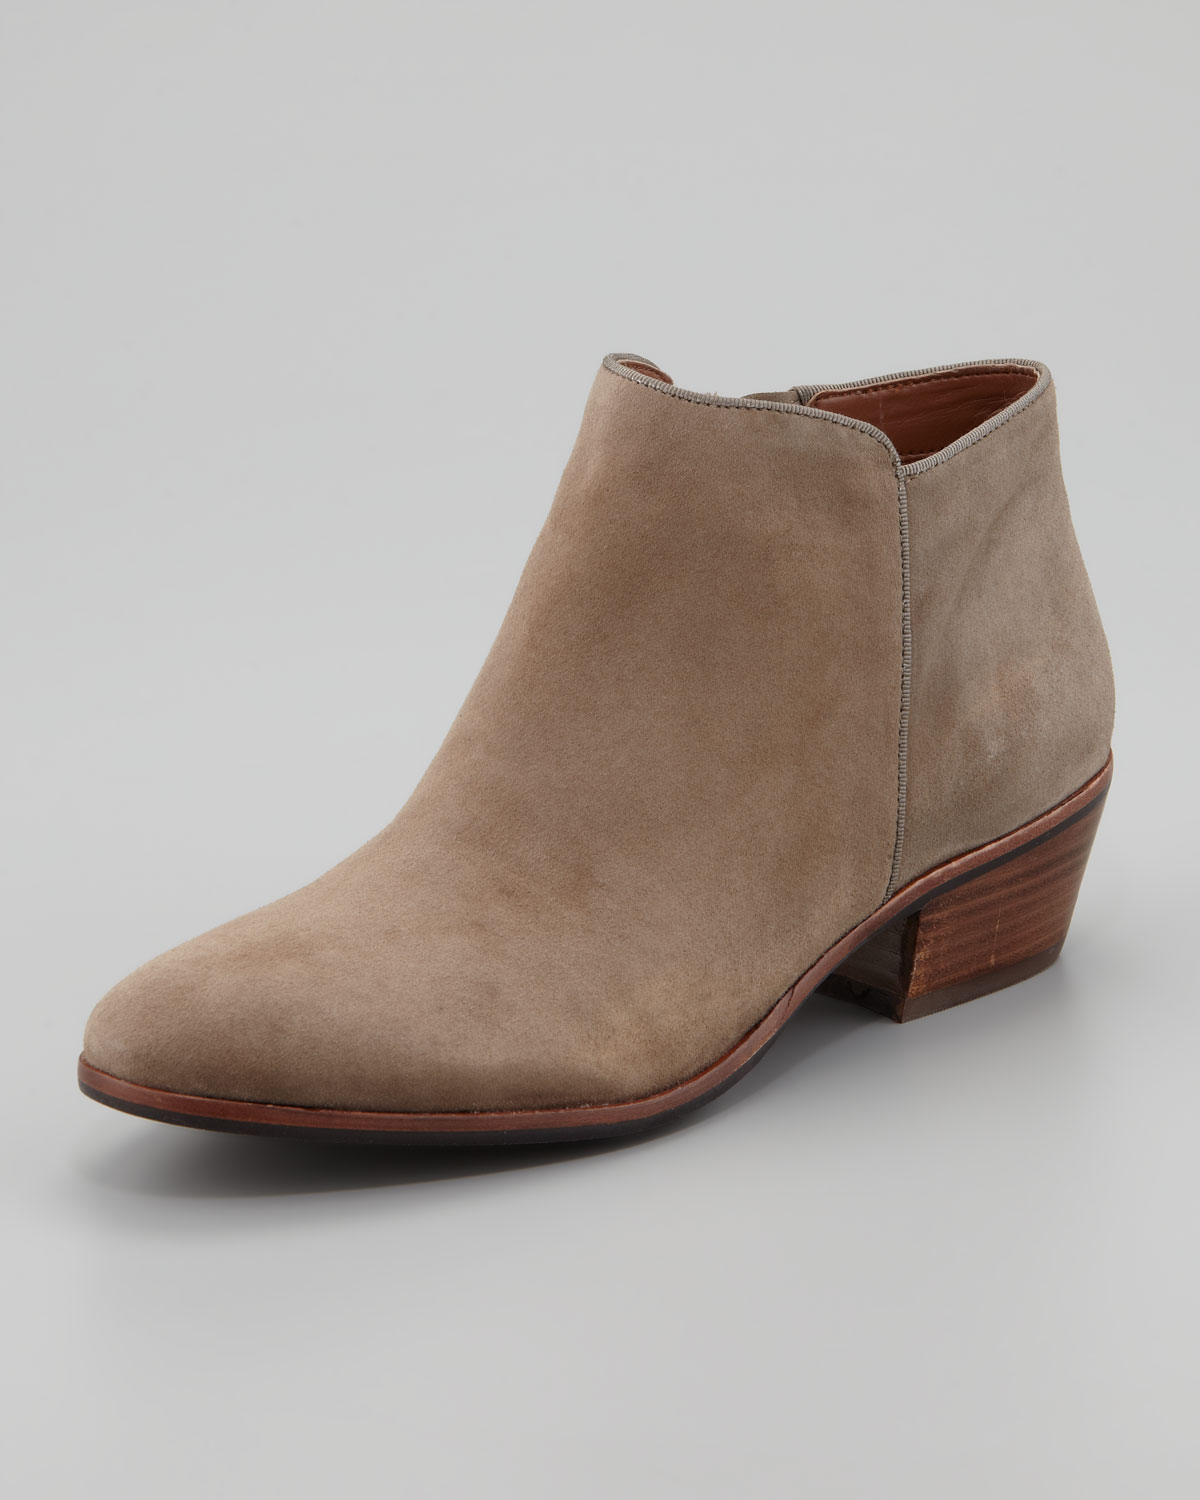 Cool Womens Suede Ankle Boots From Hudson London Crafted With Genuine Suede